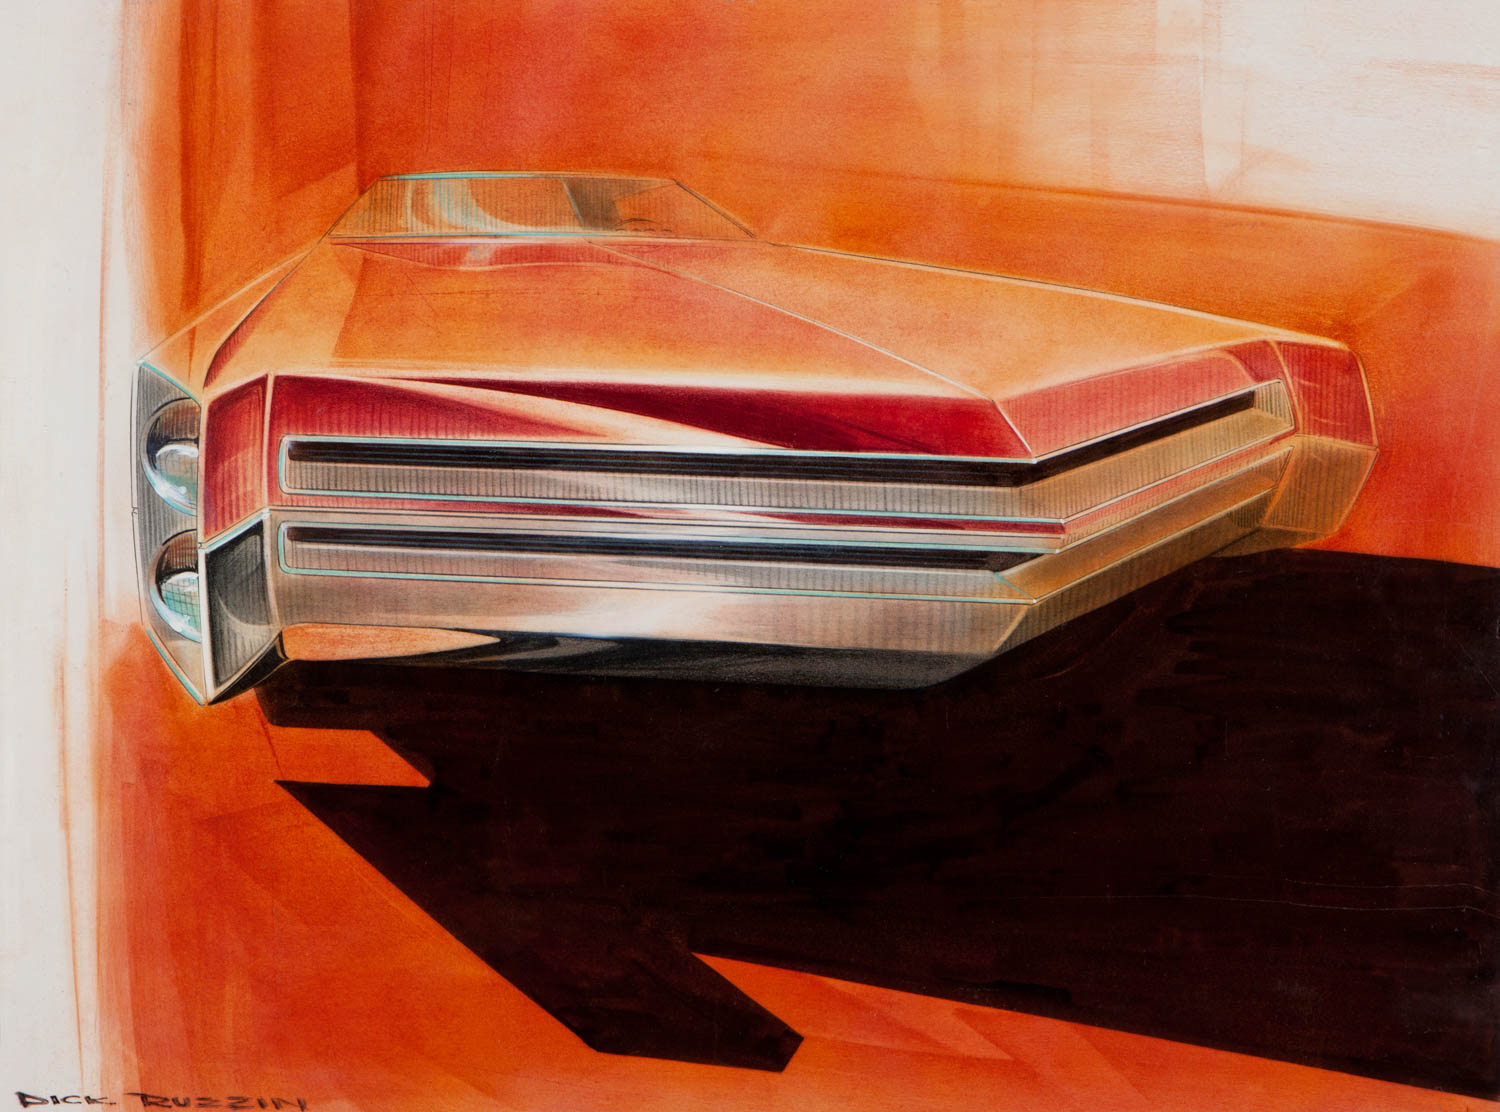 I did this sketch in the International Design Studio in 1969 for an Impala when the grille bar as a design theme for Chevy was just getting started. Chevrolet Design institutionalized the bar in its Design Brand Statement in 1998 under my direction.